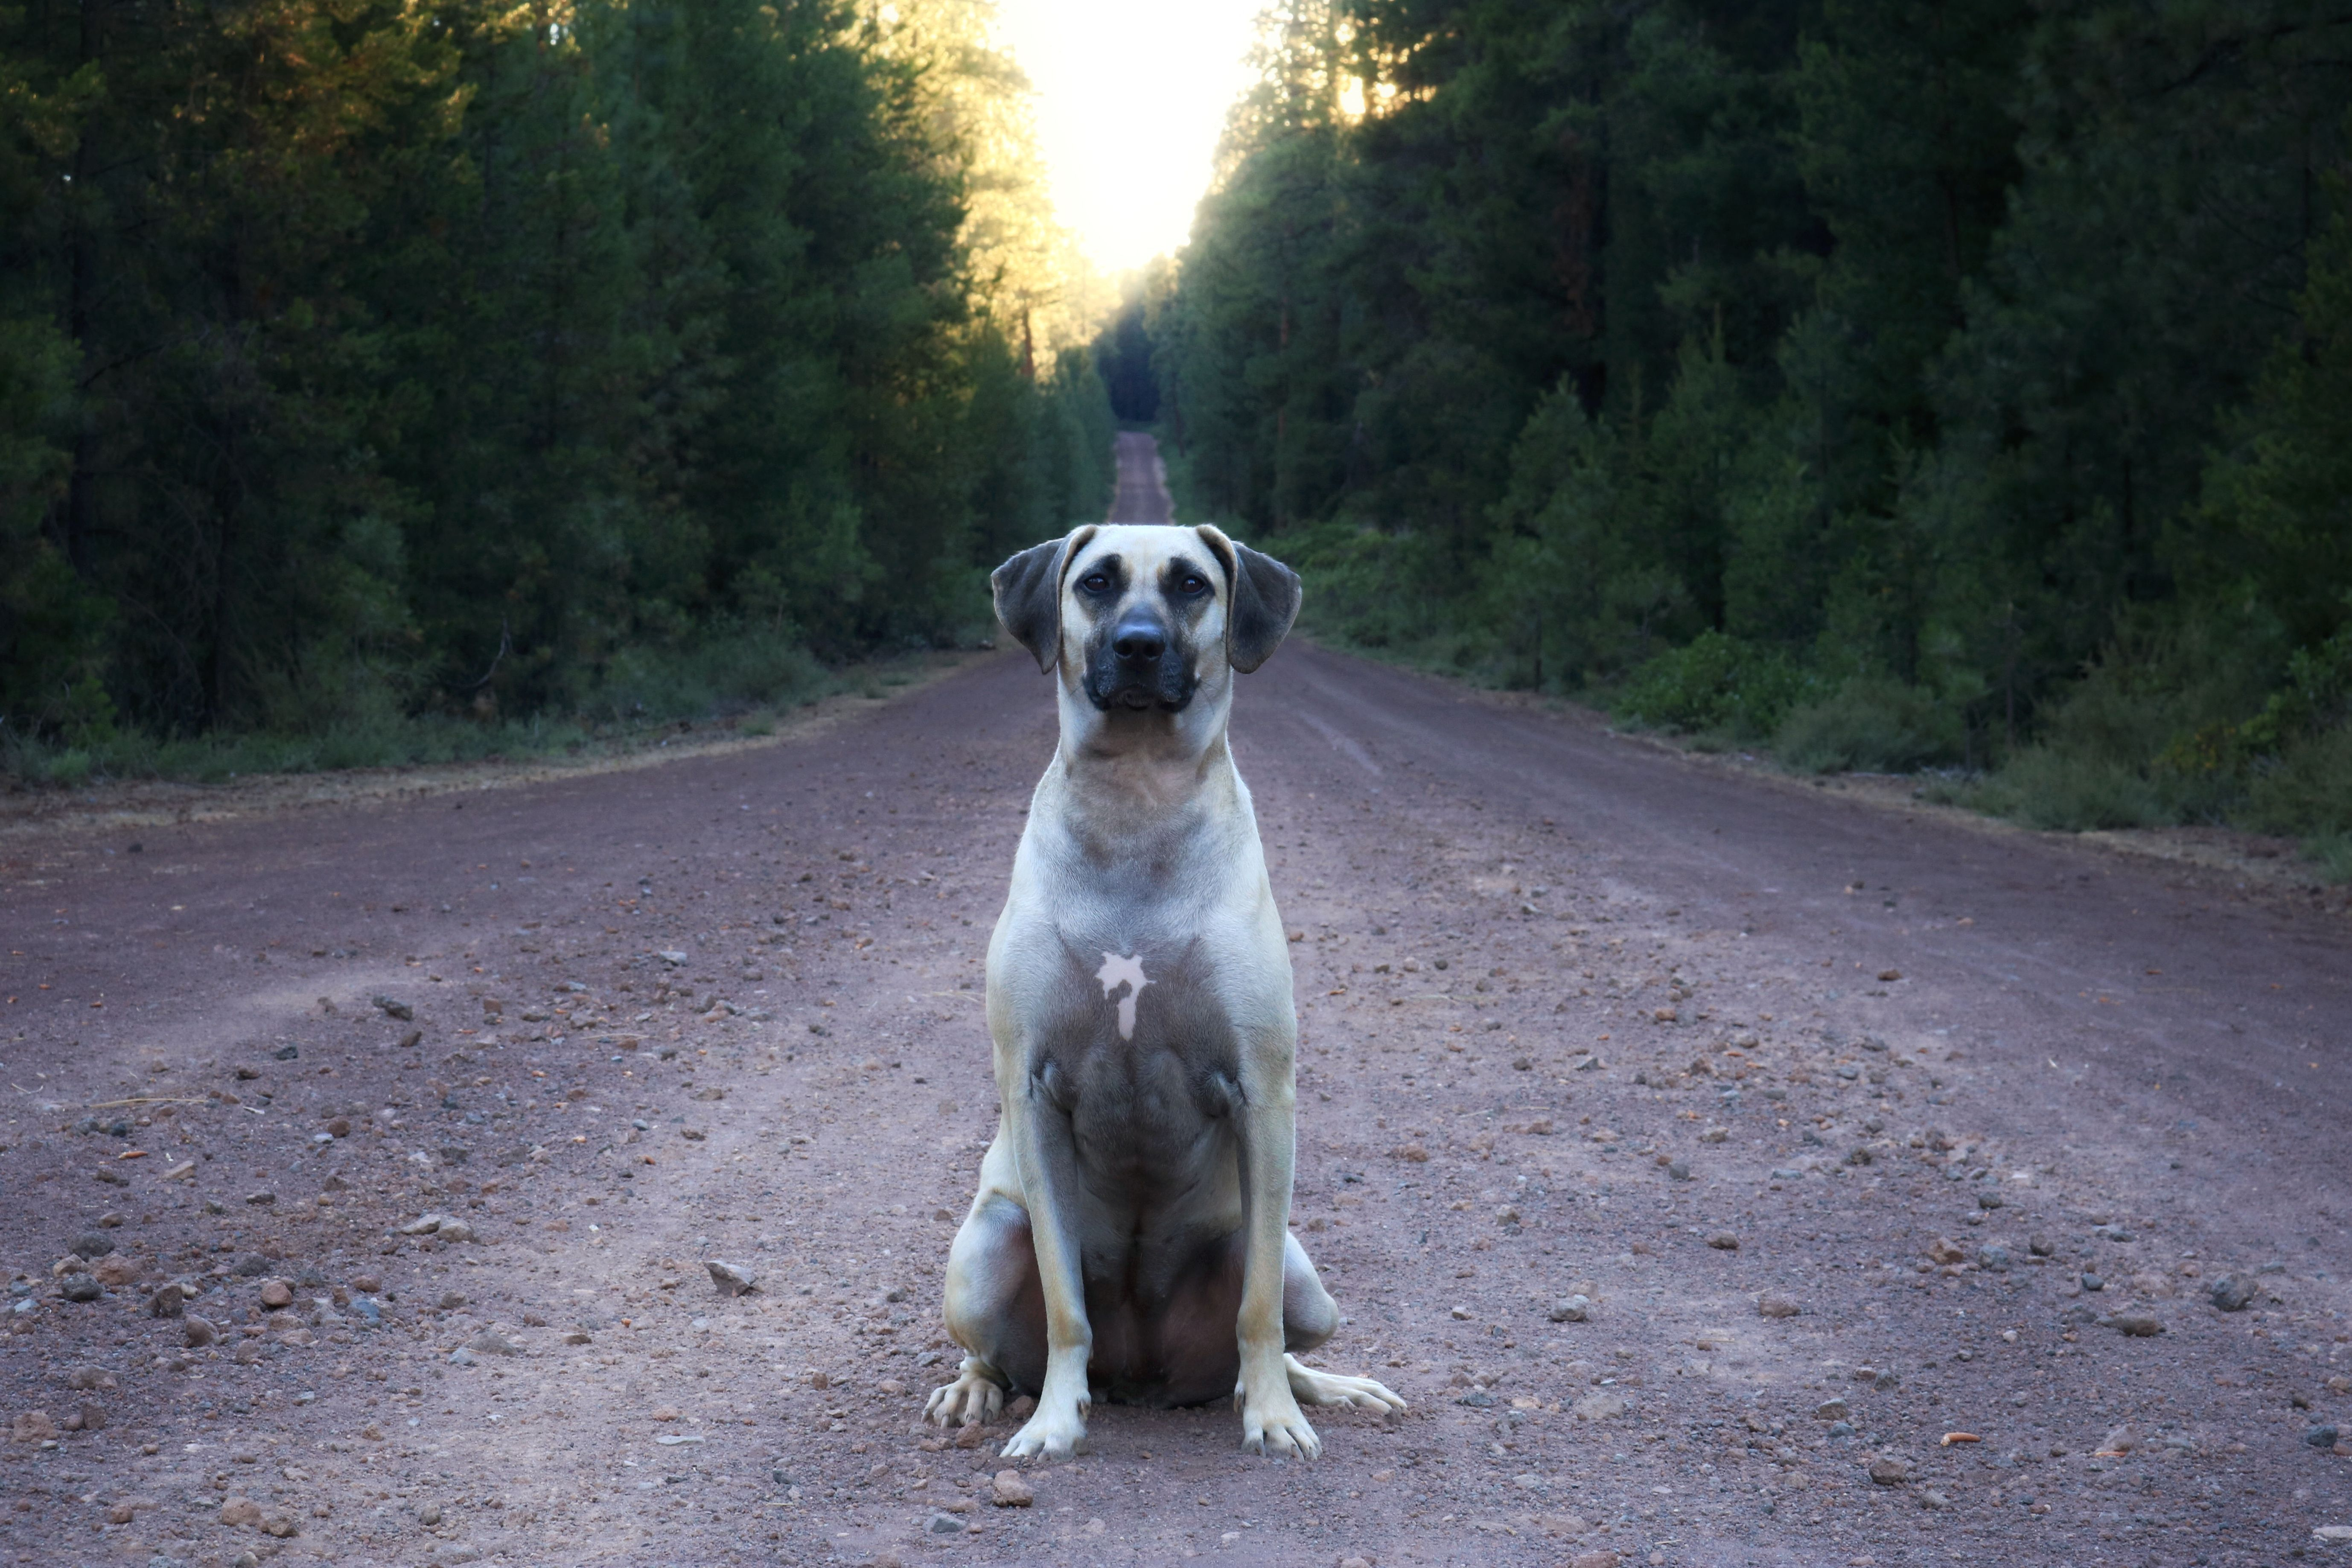 Dog Days of Summer #blackmouthcurdog Quinn taking up space on Forest Service Road in Deschutes National Forest. Cascade Lakes Highway, Oregon. Black Mouth Cur dog. #blackmouthcurdog